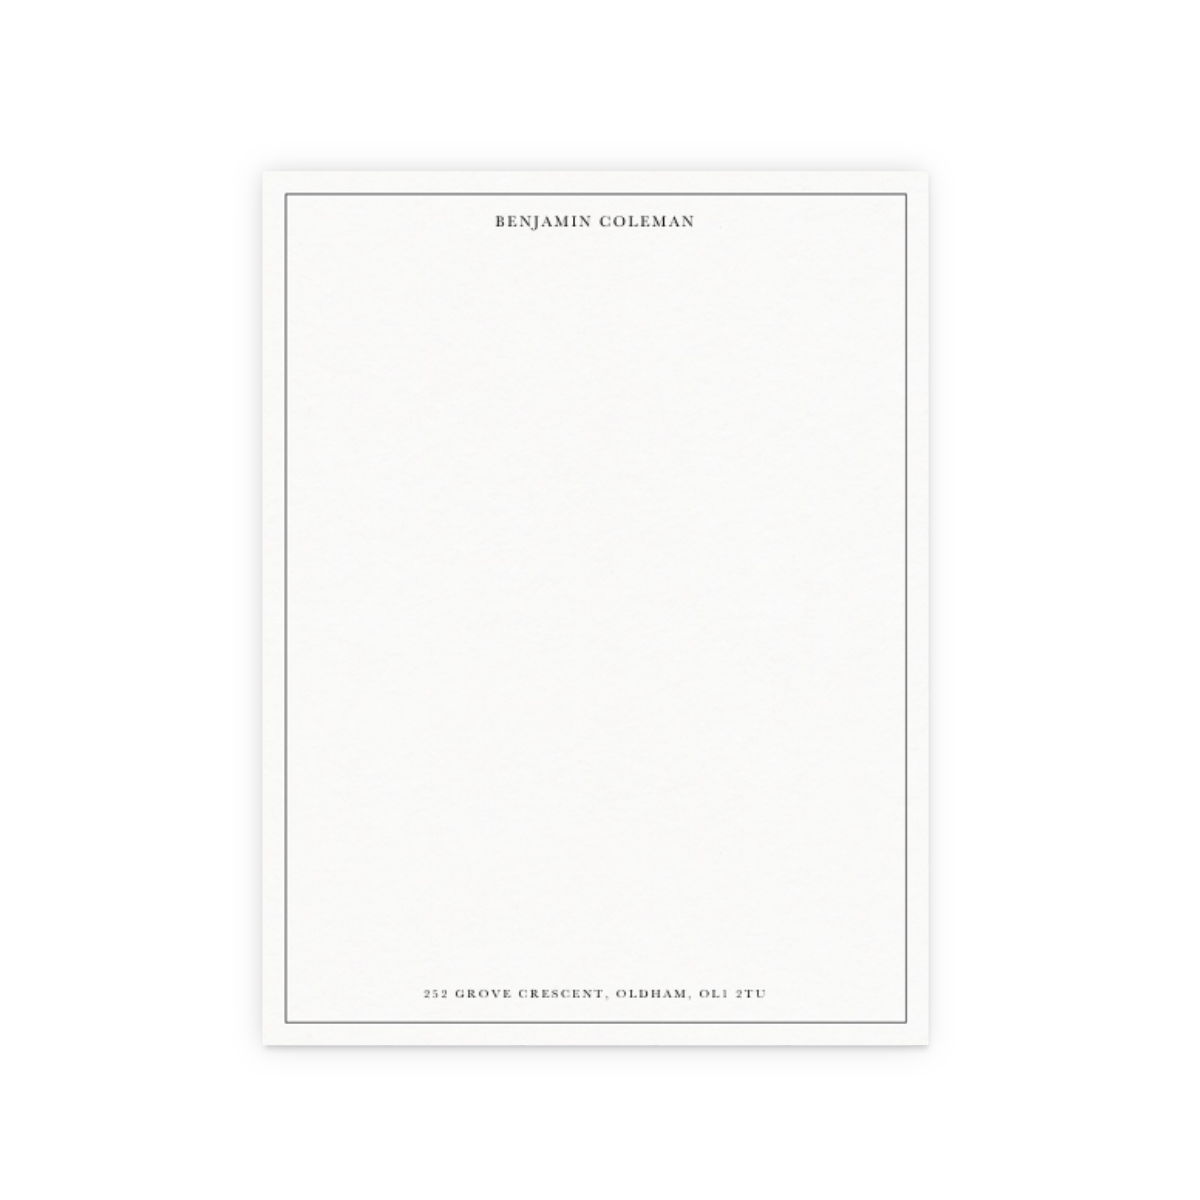 Https%3a%2f%2fwww.papier.com%2fproduct image%2f71412%2f45%2fclassic thin border 16878 front 1554980856.png?ixlib=rb 1.1